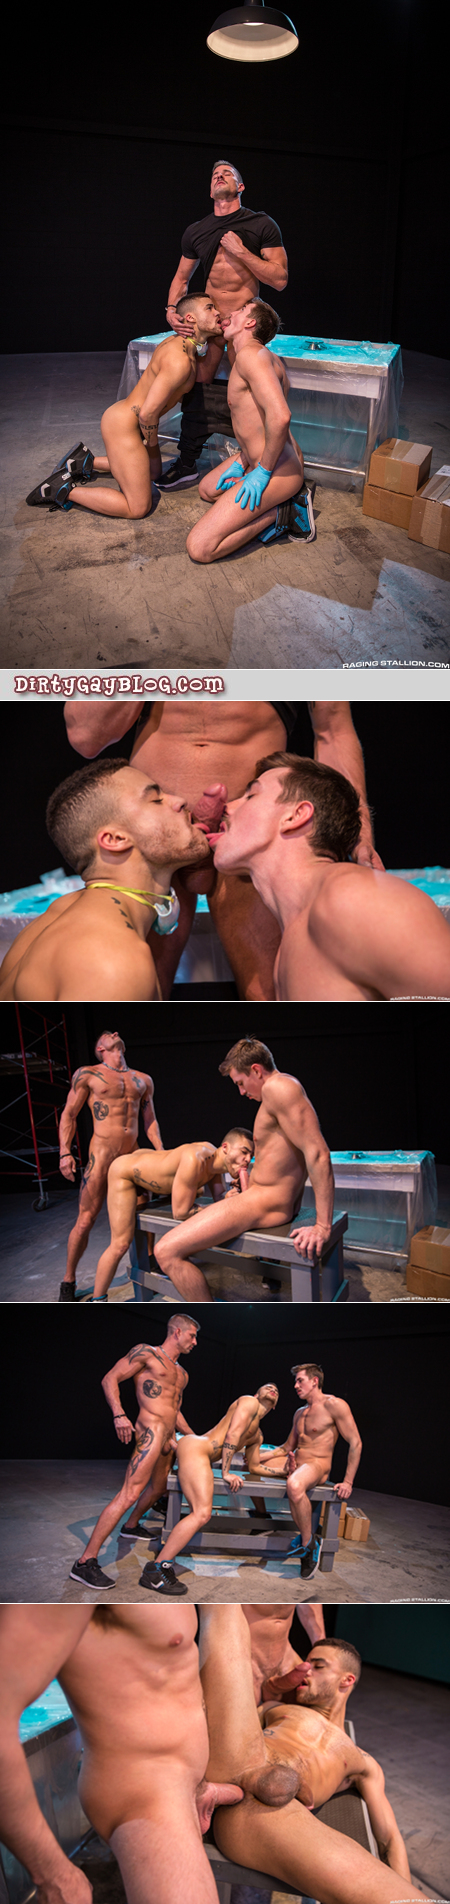 Two male employees servicing their muscular boss.